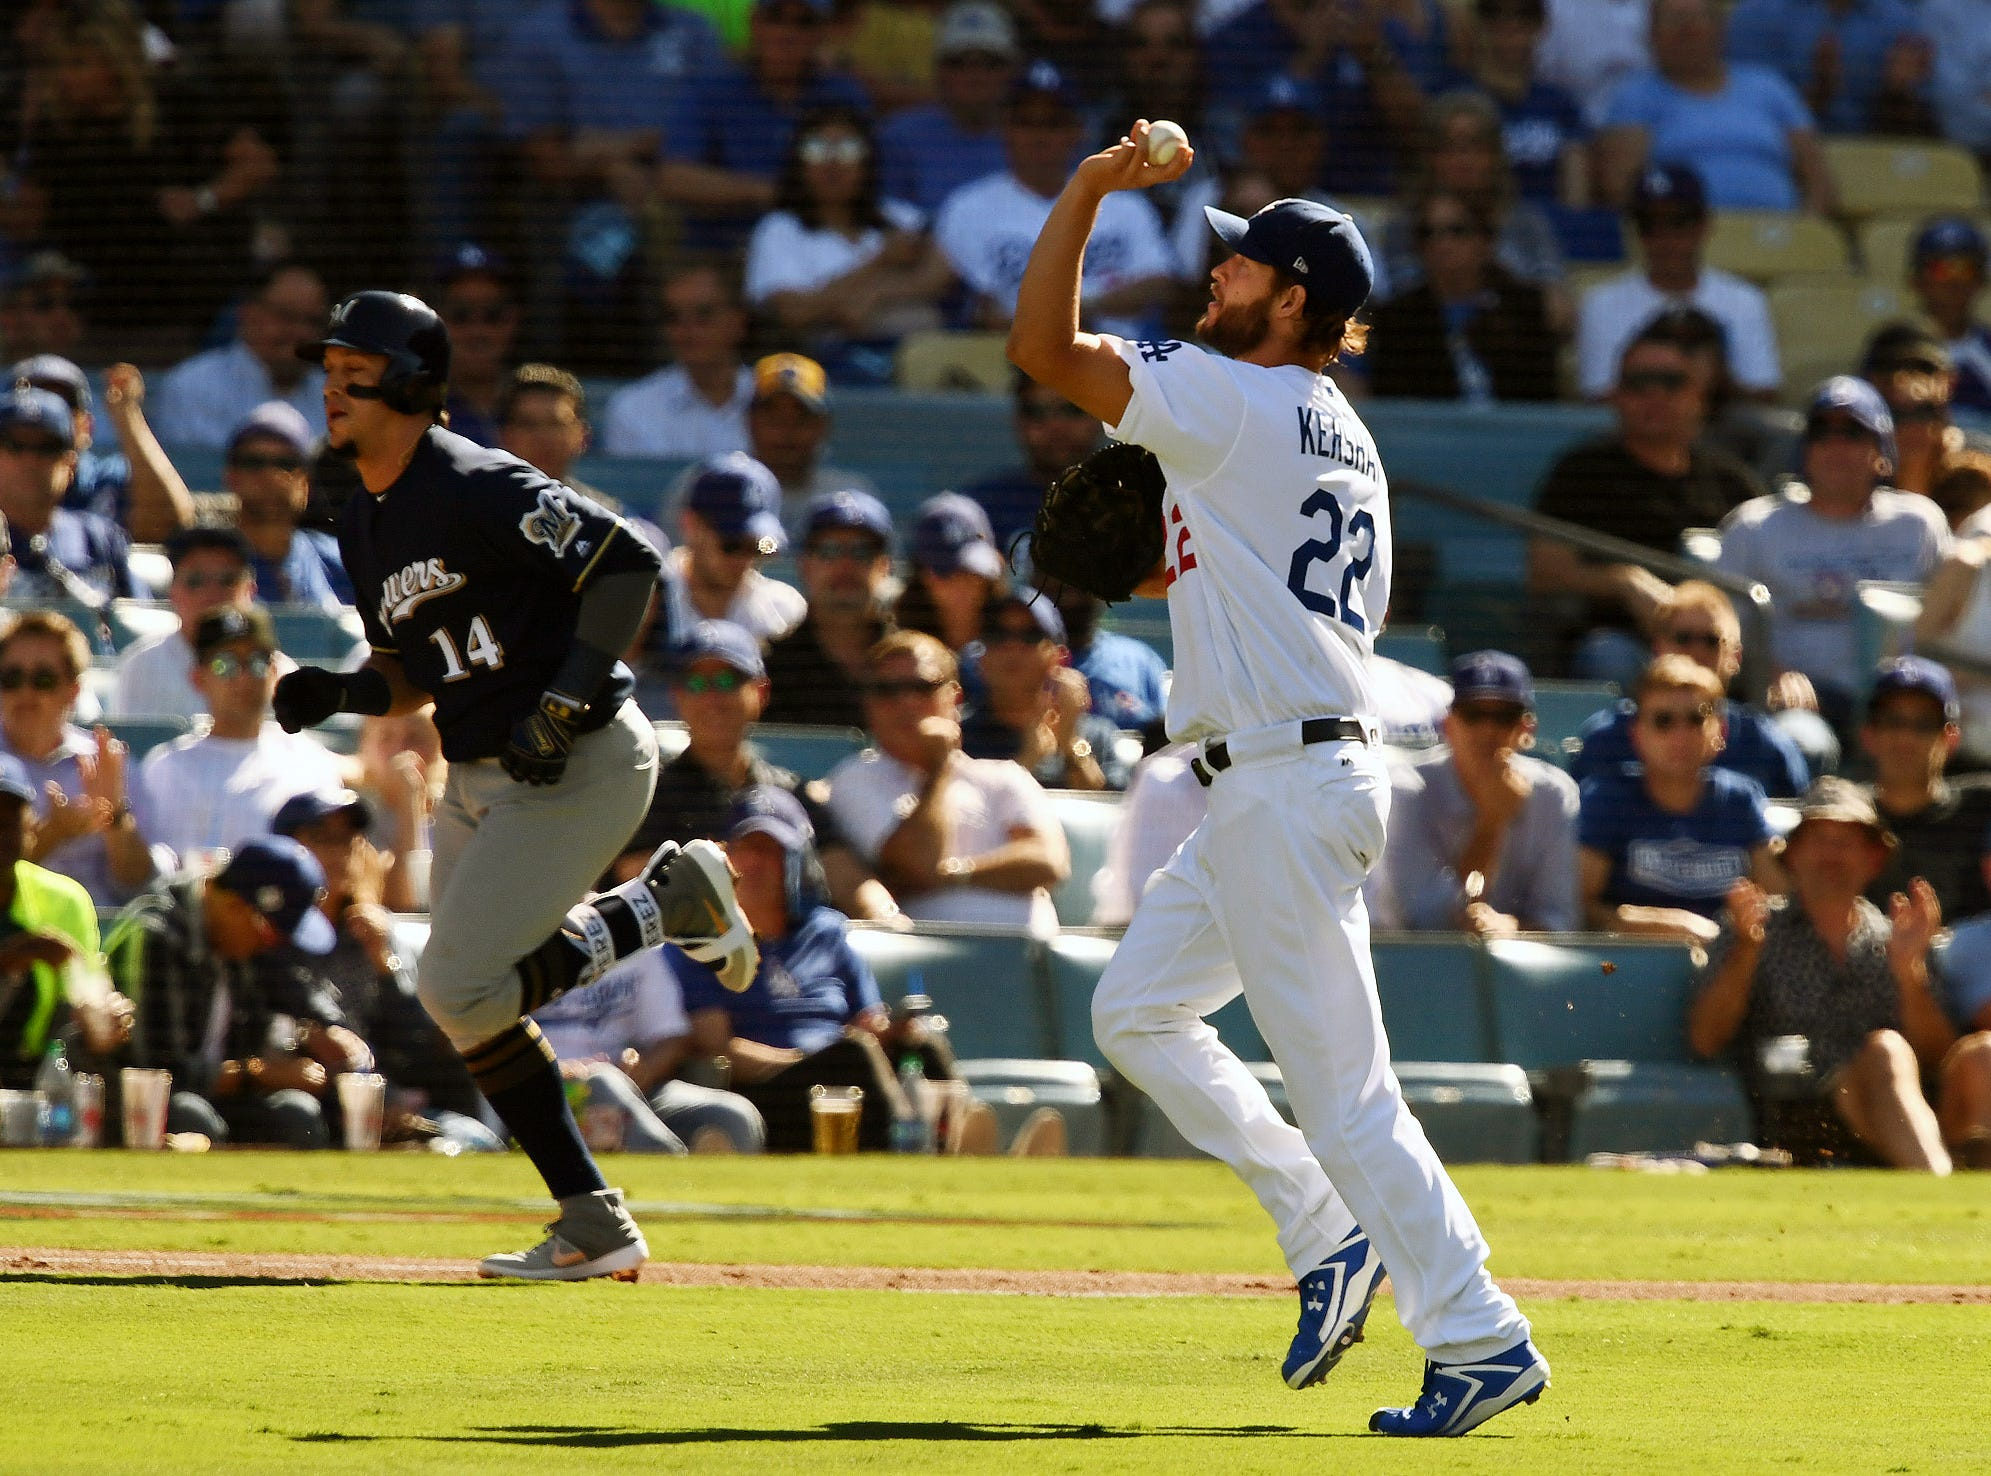 NLCS Game 5: Clayton Kershaw throws to first base for an out in the second inning.